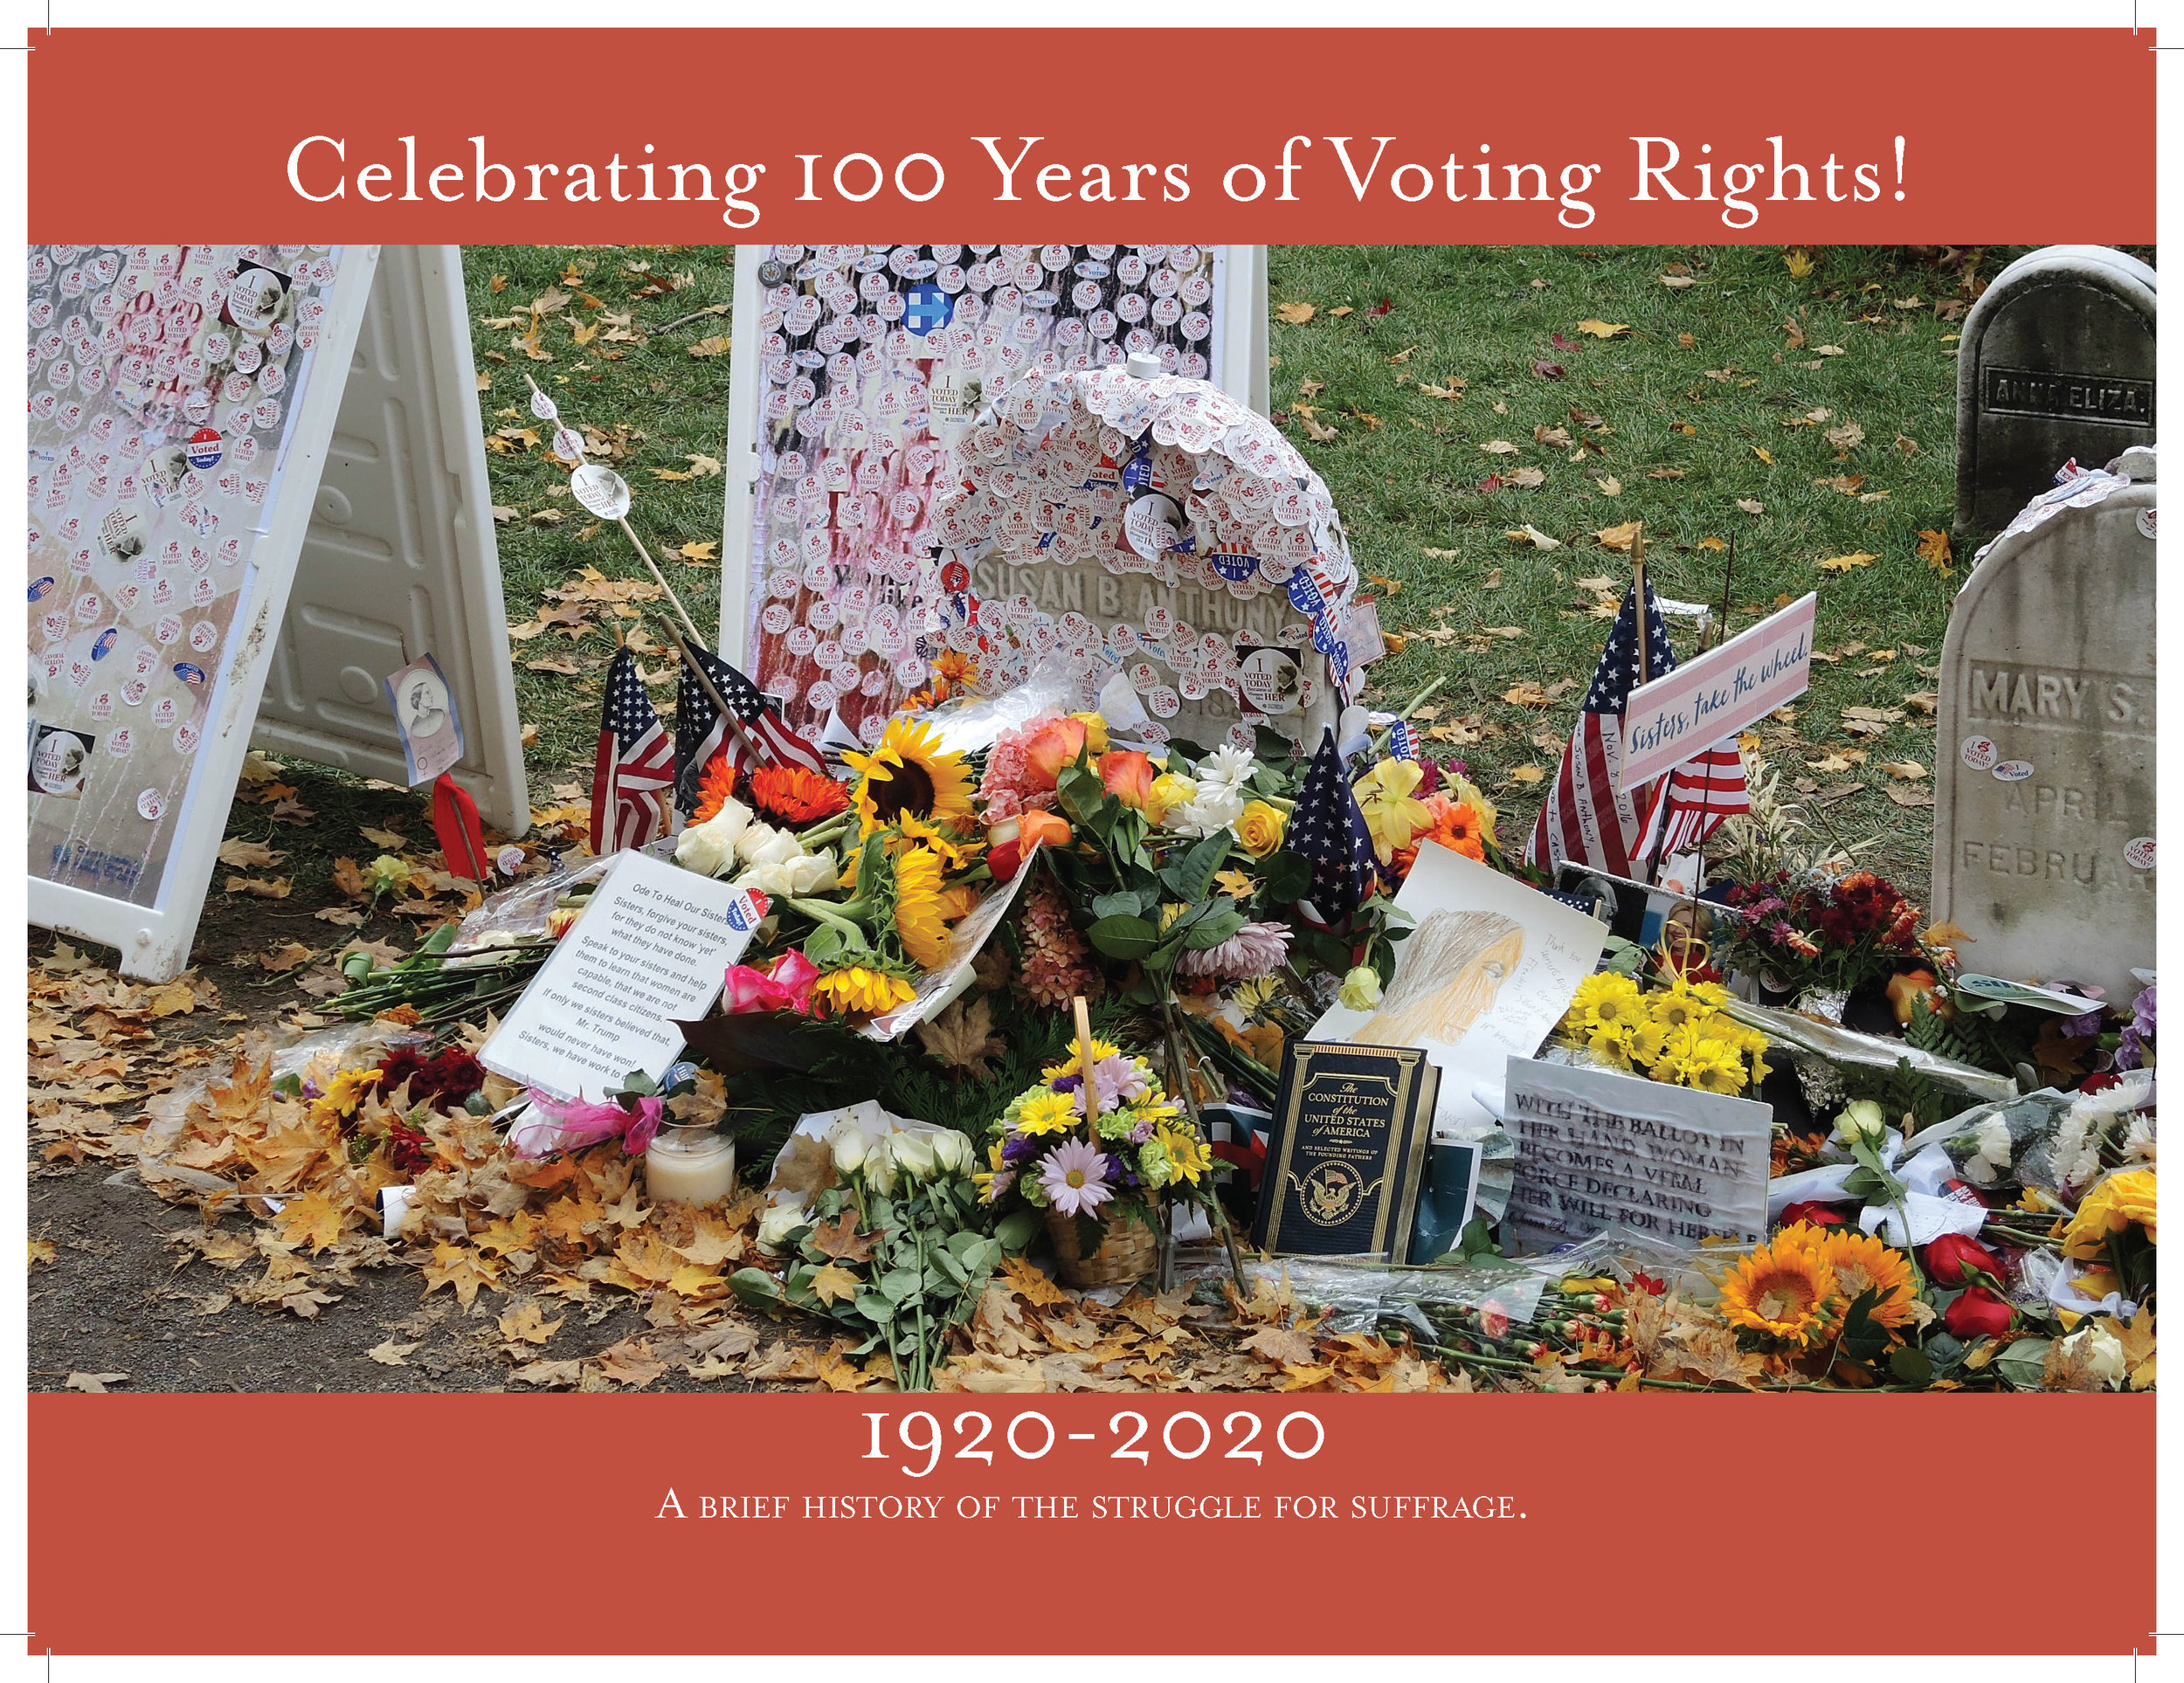 Pre-order your 2020 LWVBWC Centennial Calendar today! -